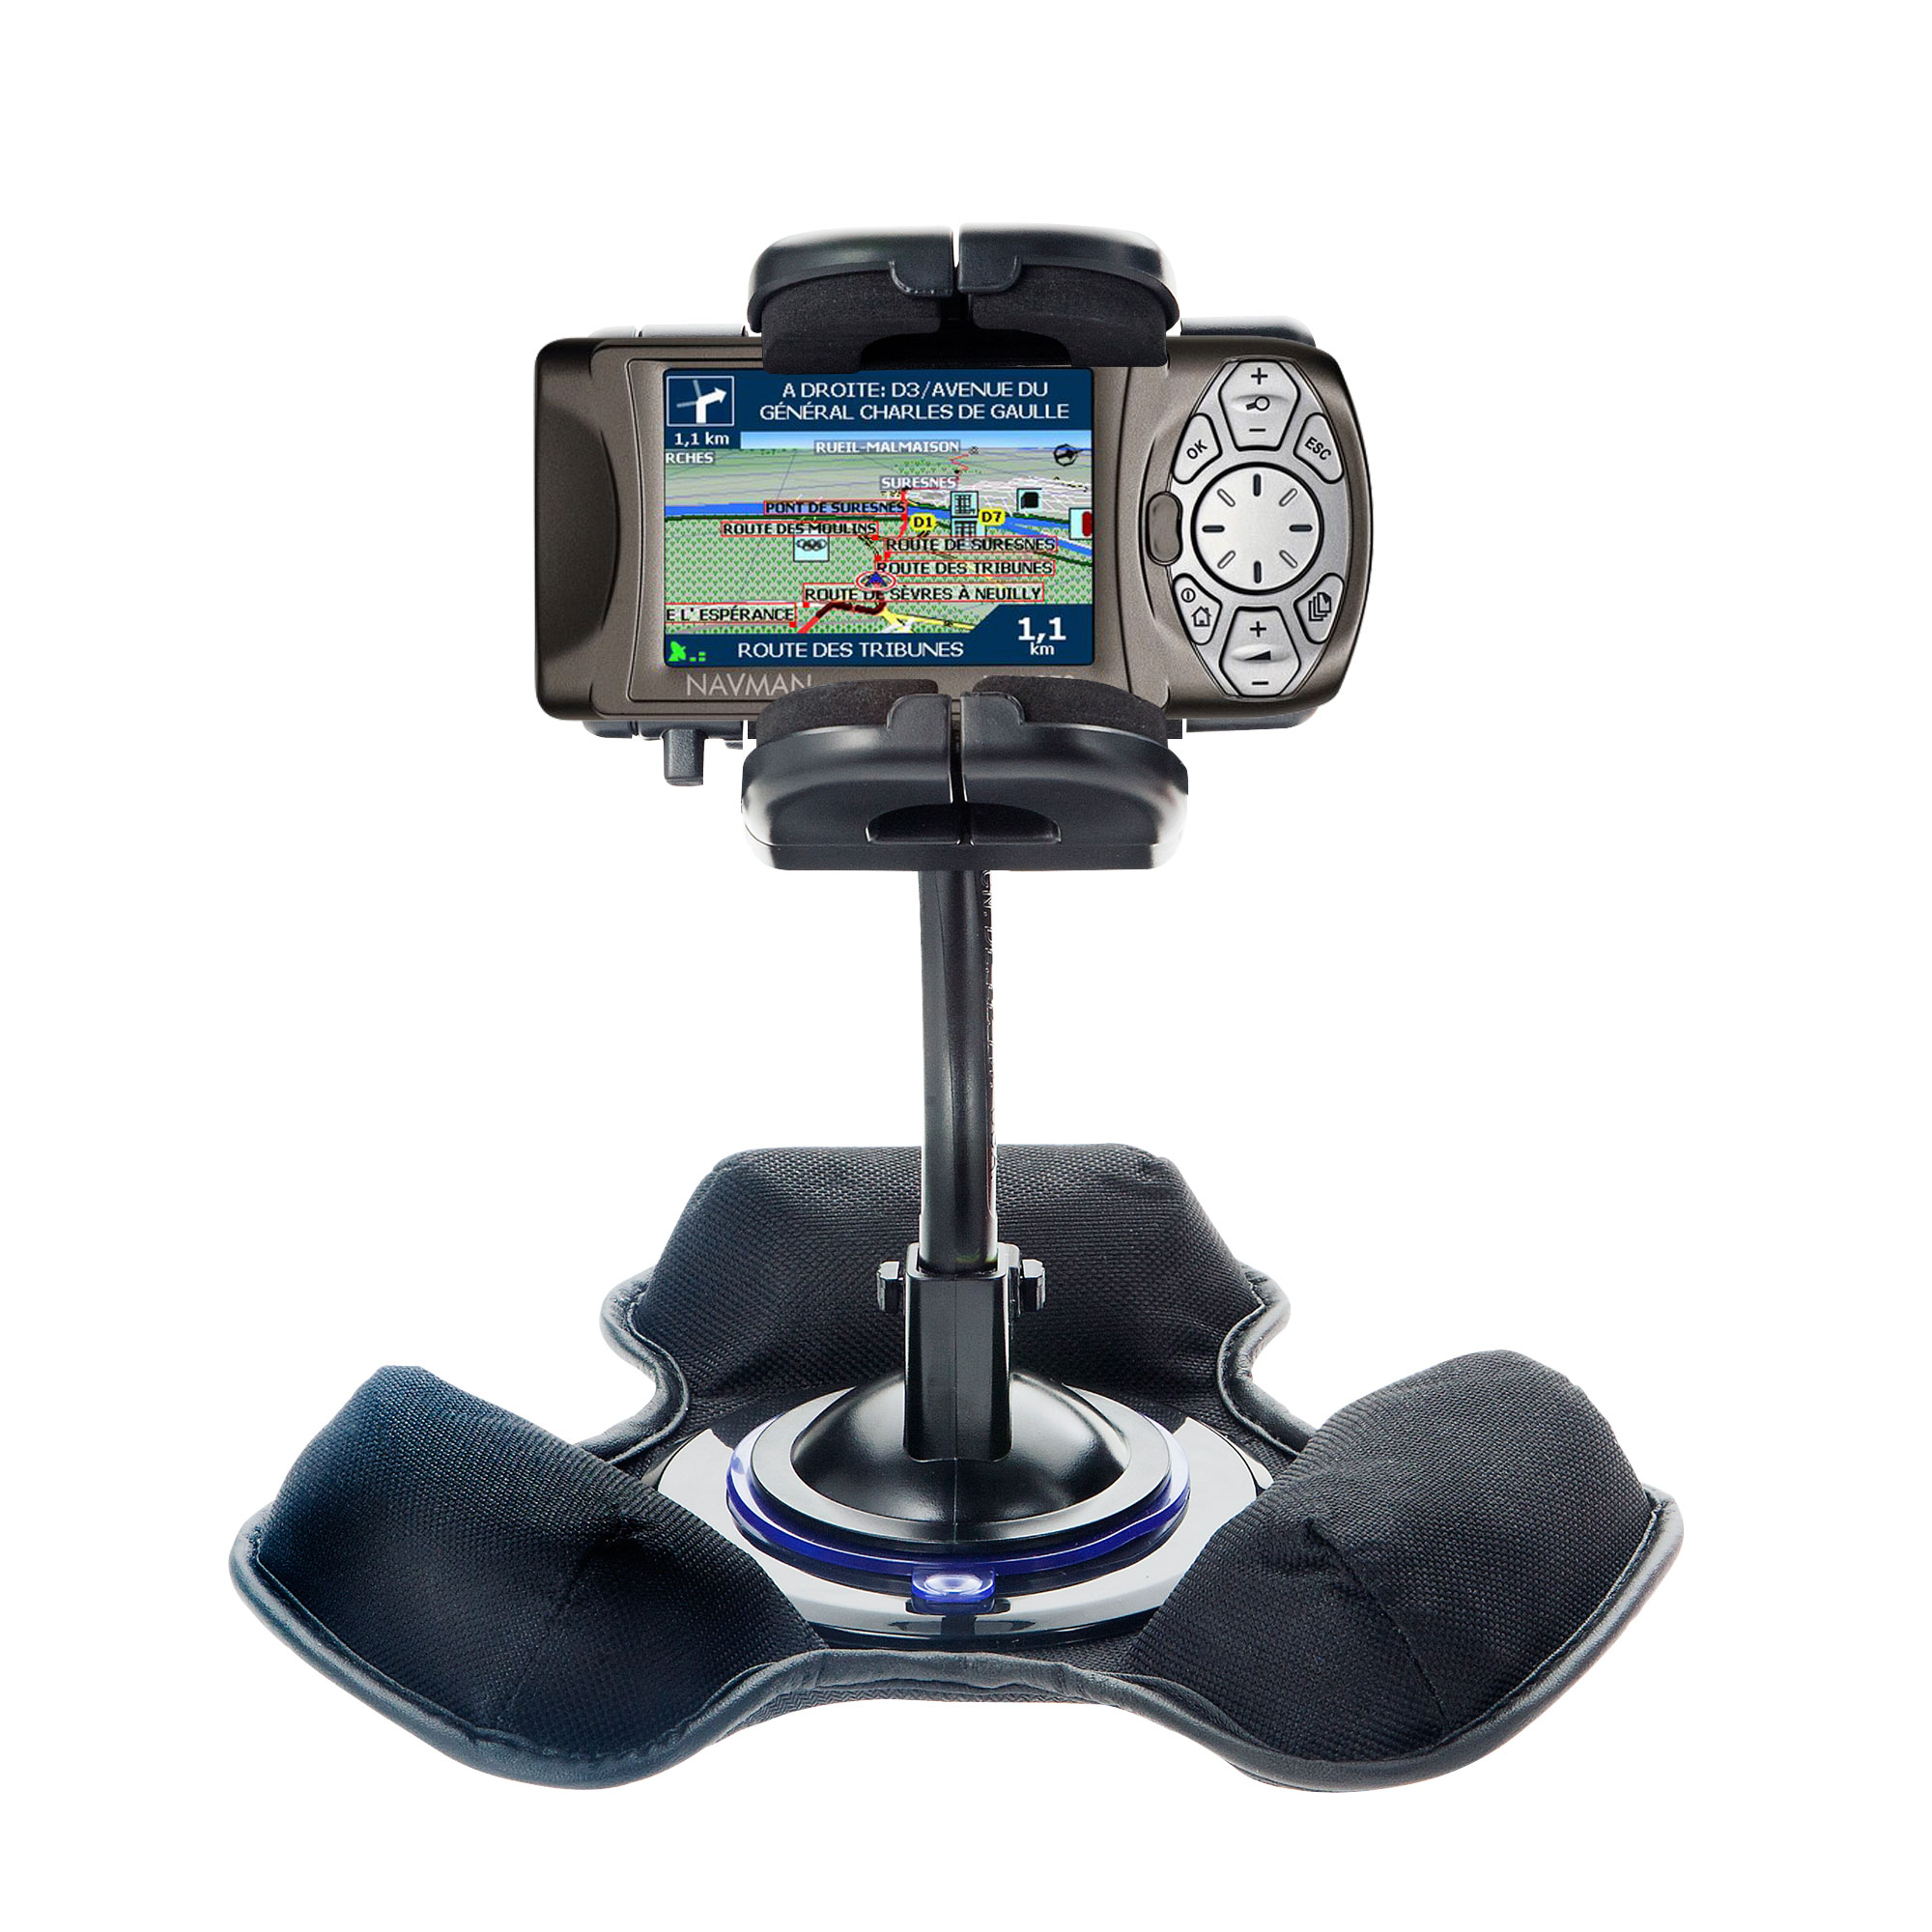 Car / Truck Vehicle Holder Mounting System for Navman iCN 650 Includes Unique Flexible Windshield Suction and Universal Dashboard Mount Options